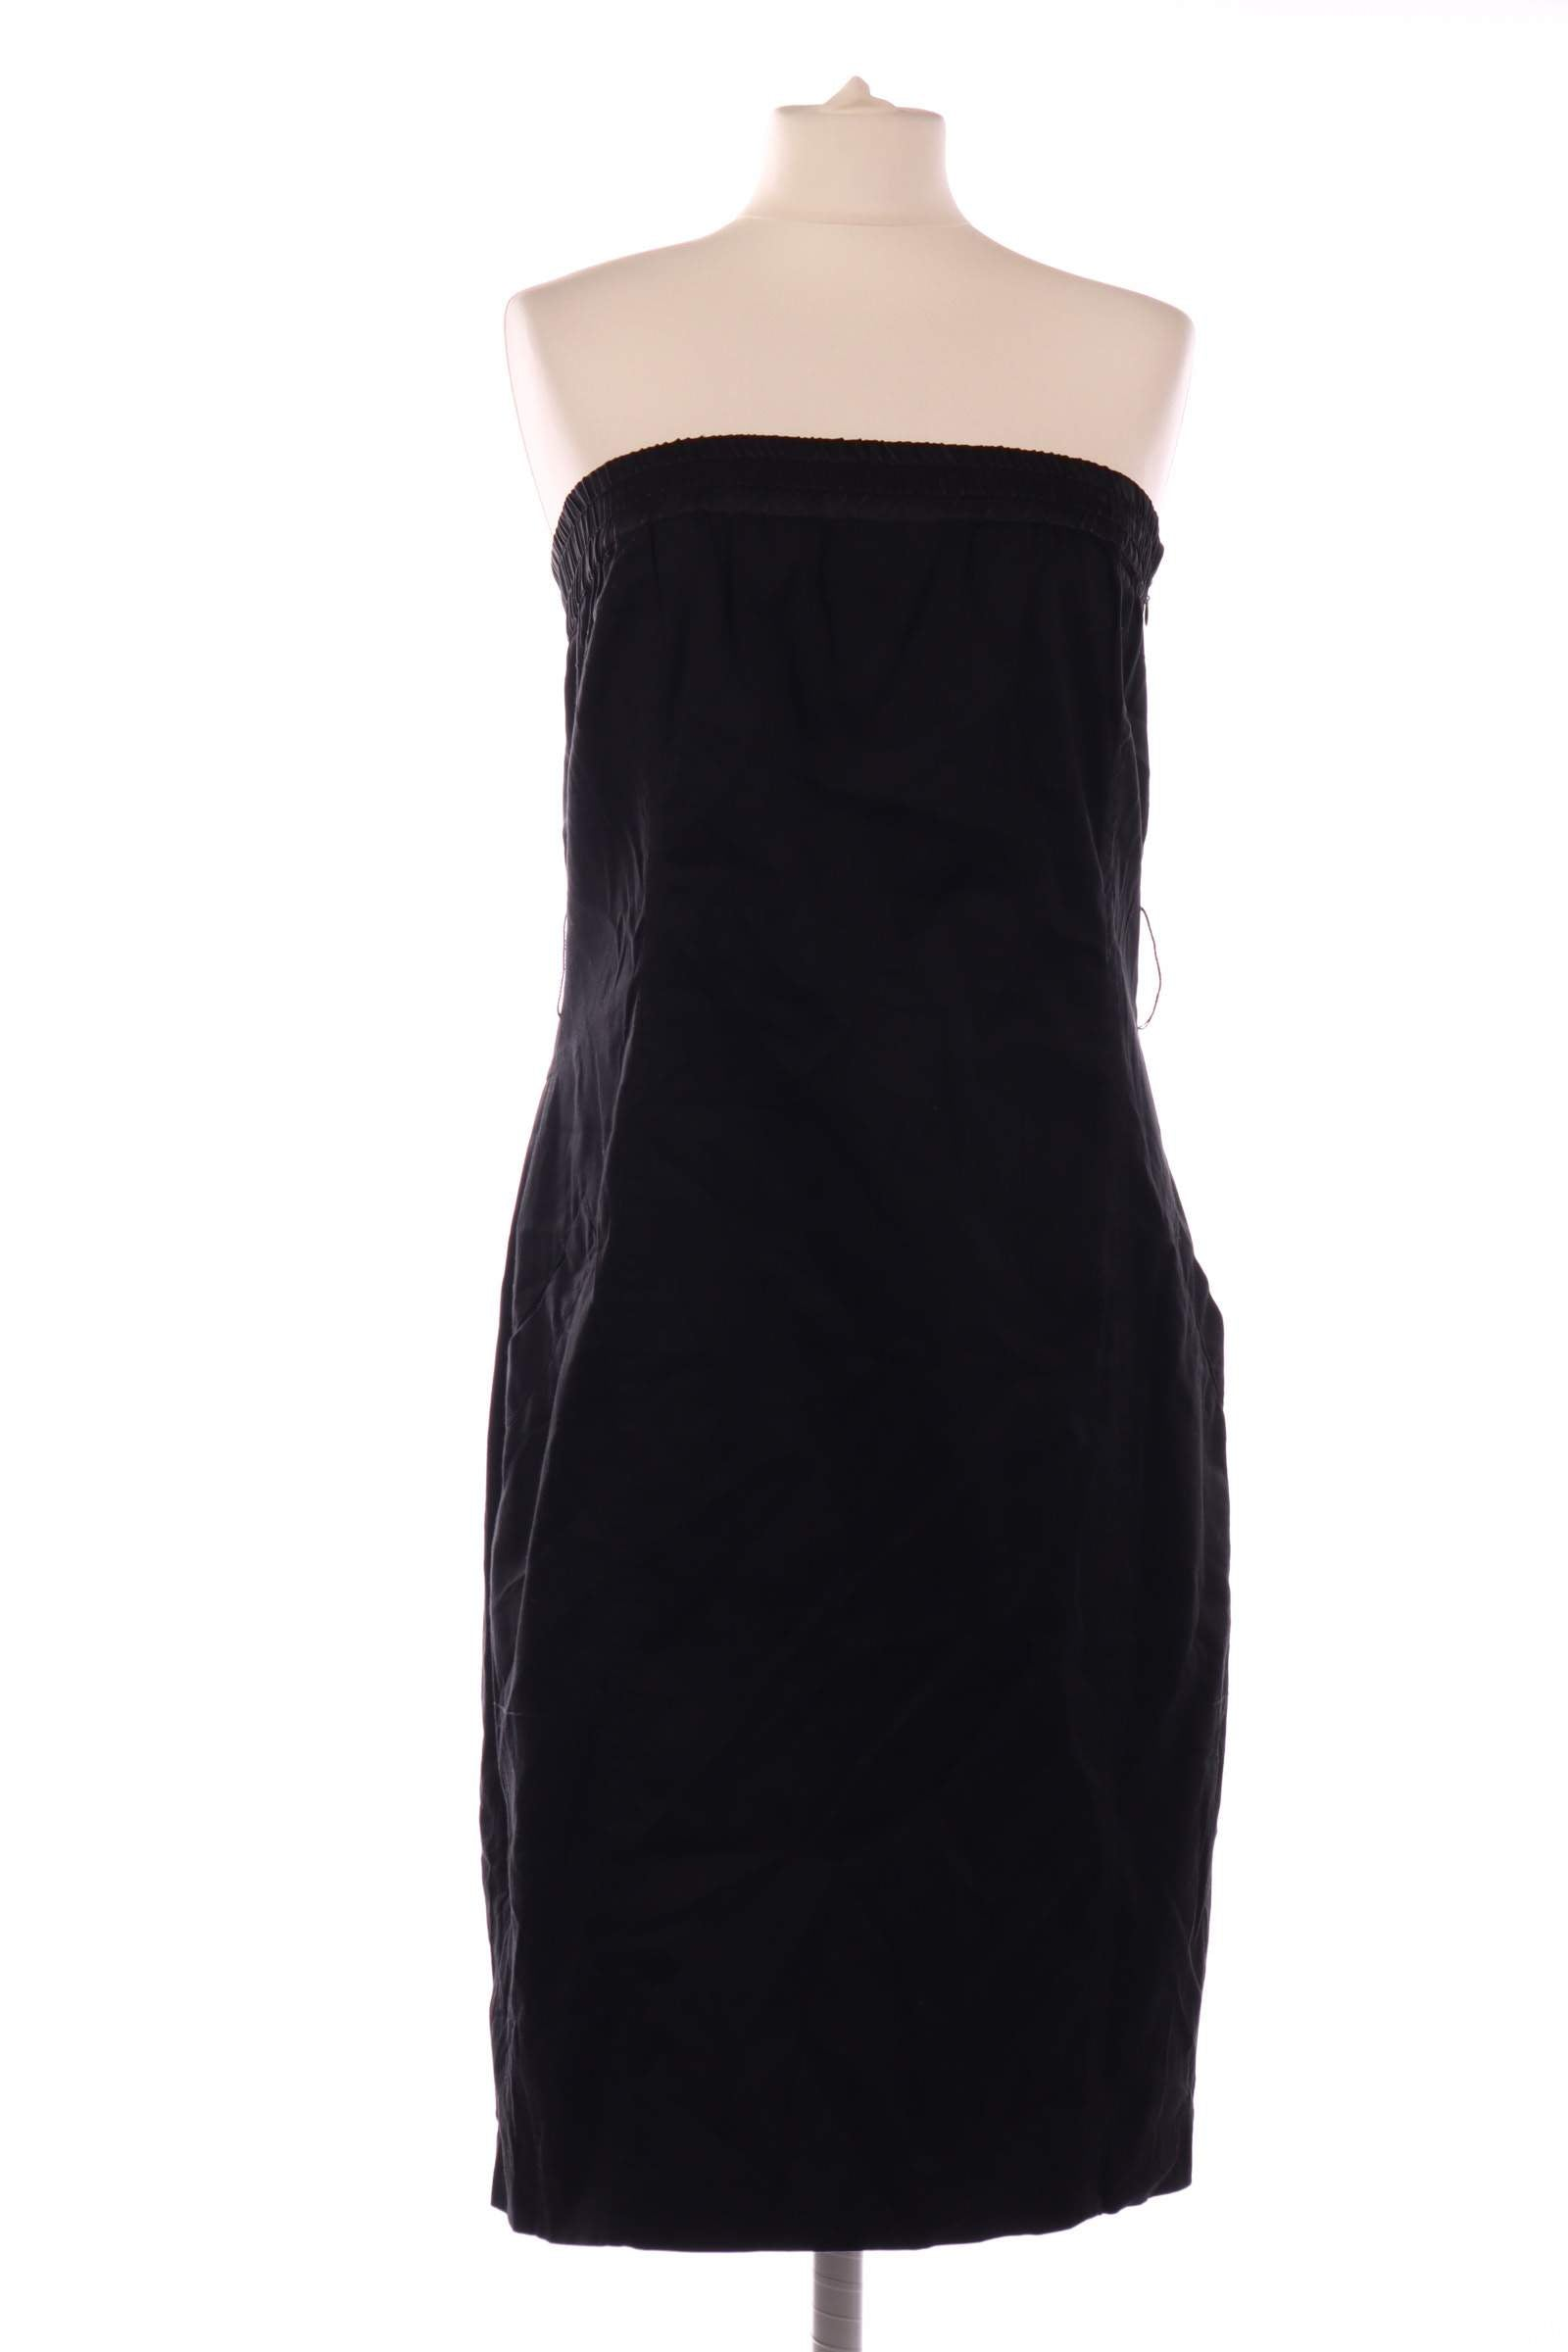 Reserved Black Dress - upty.store